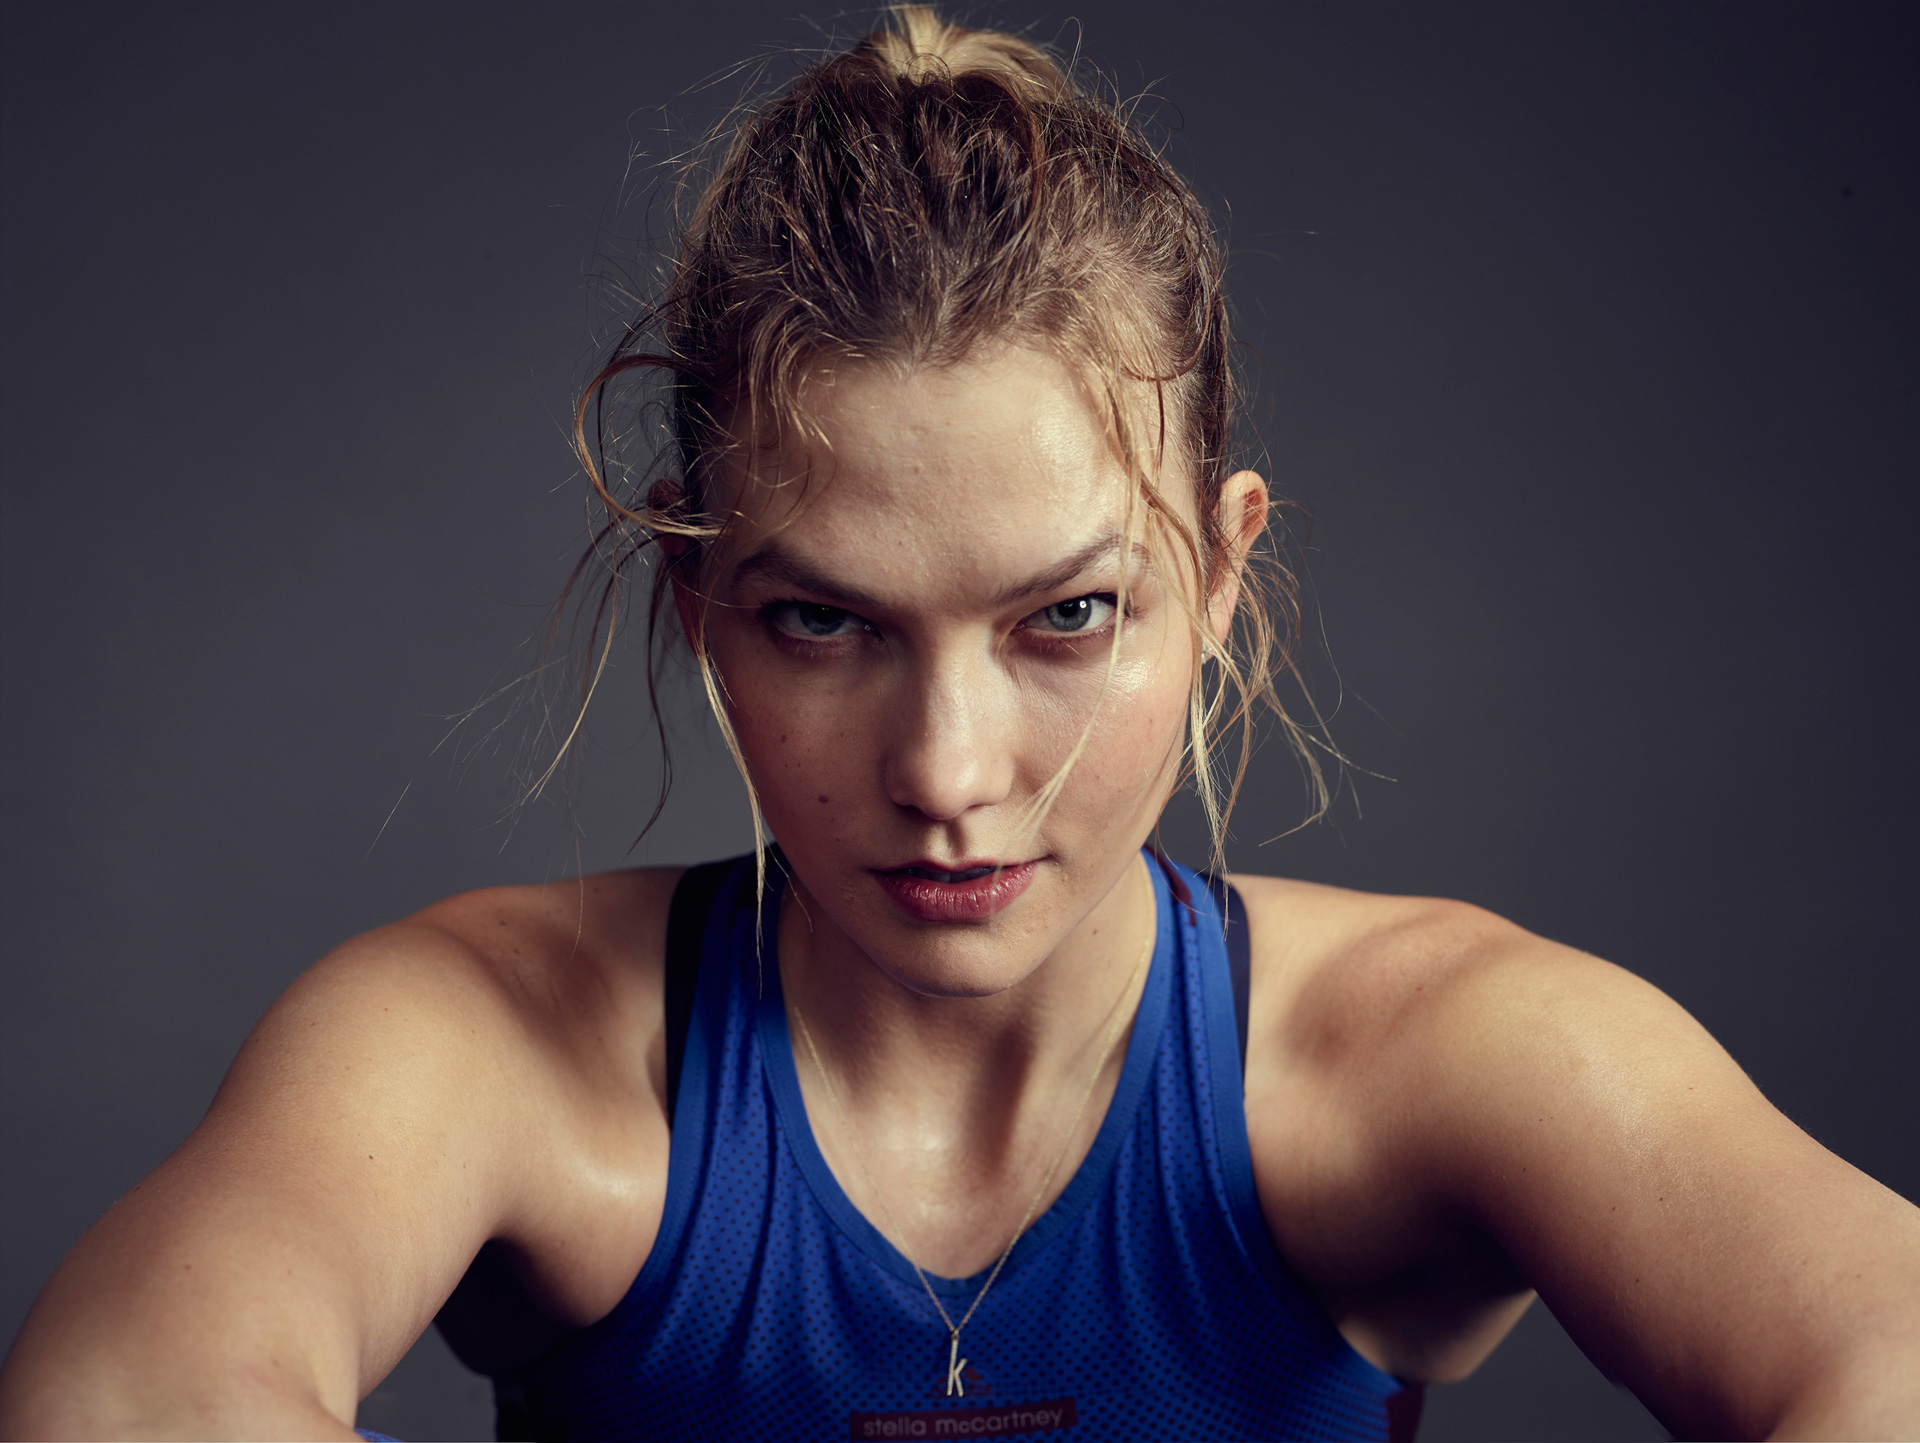 Infectar cangrejo Dibuja una imagen  Adidas UK x Karlie Kloss – June Frangue